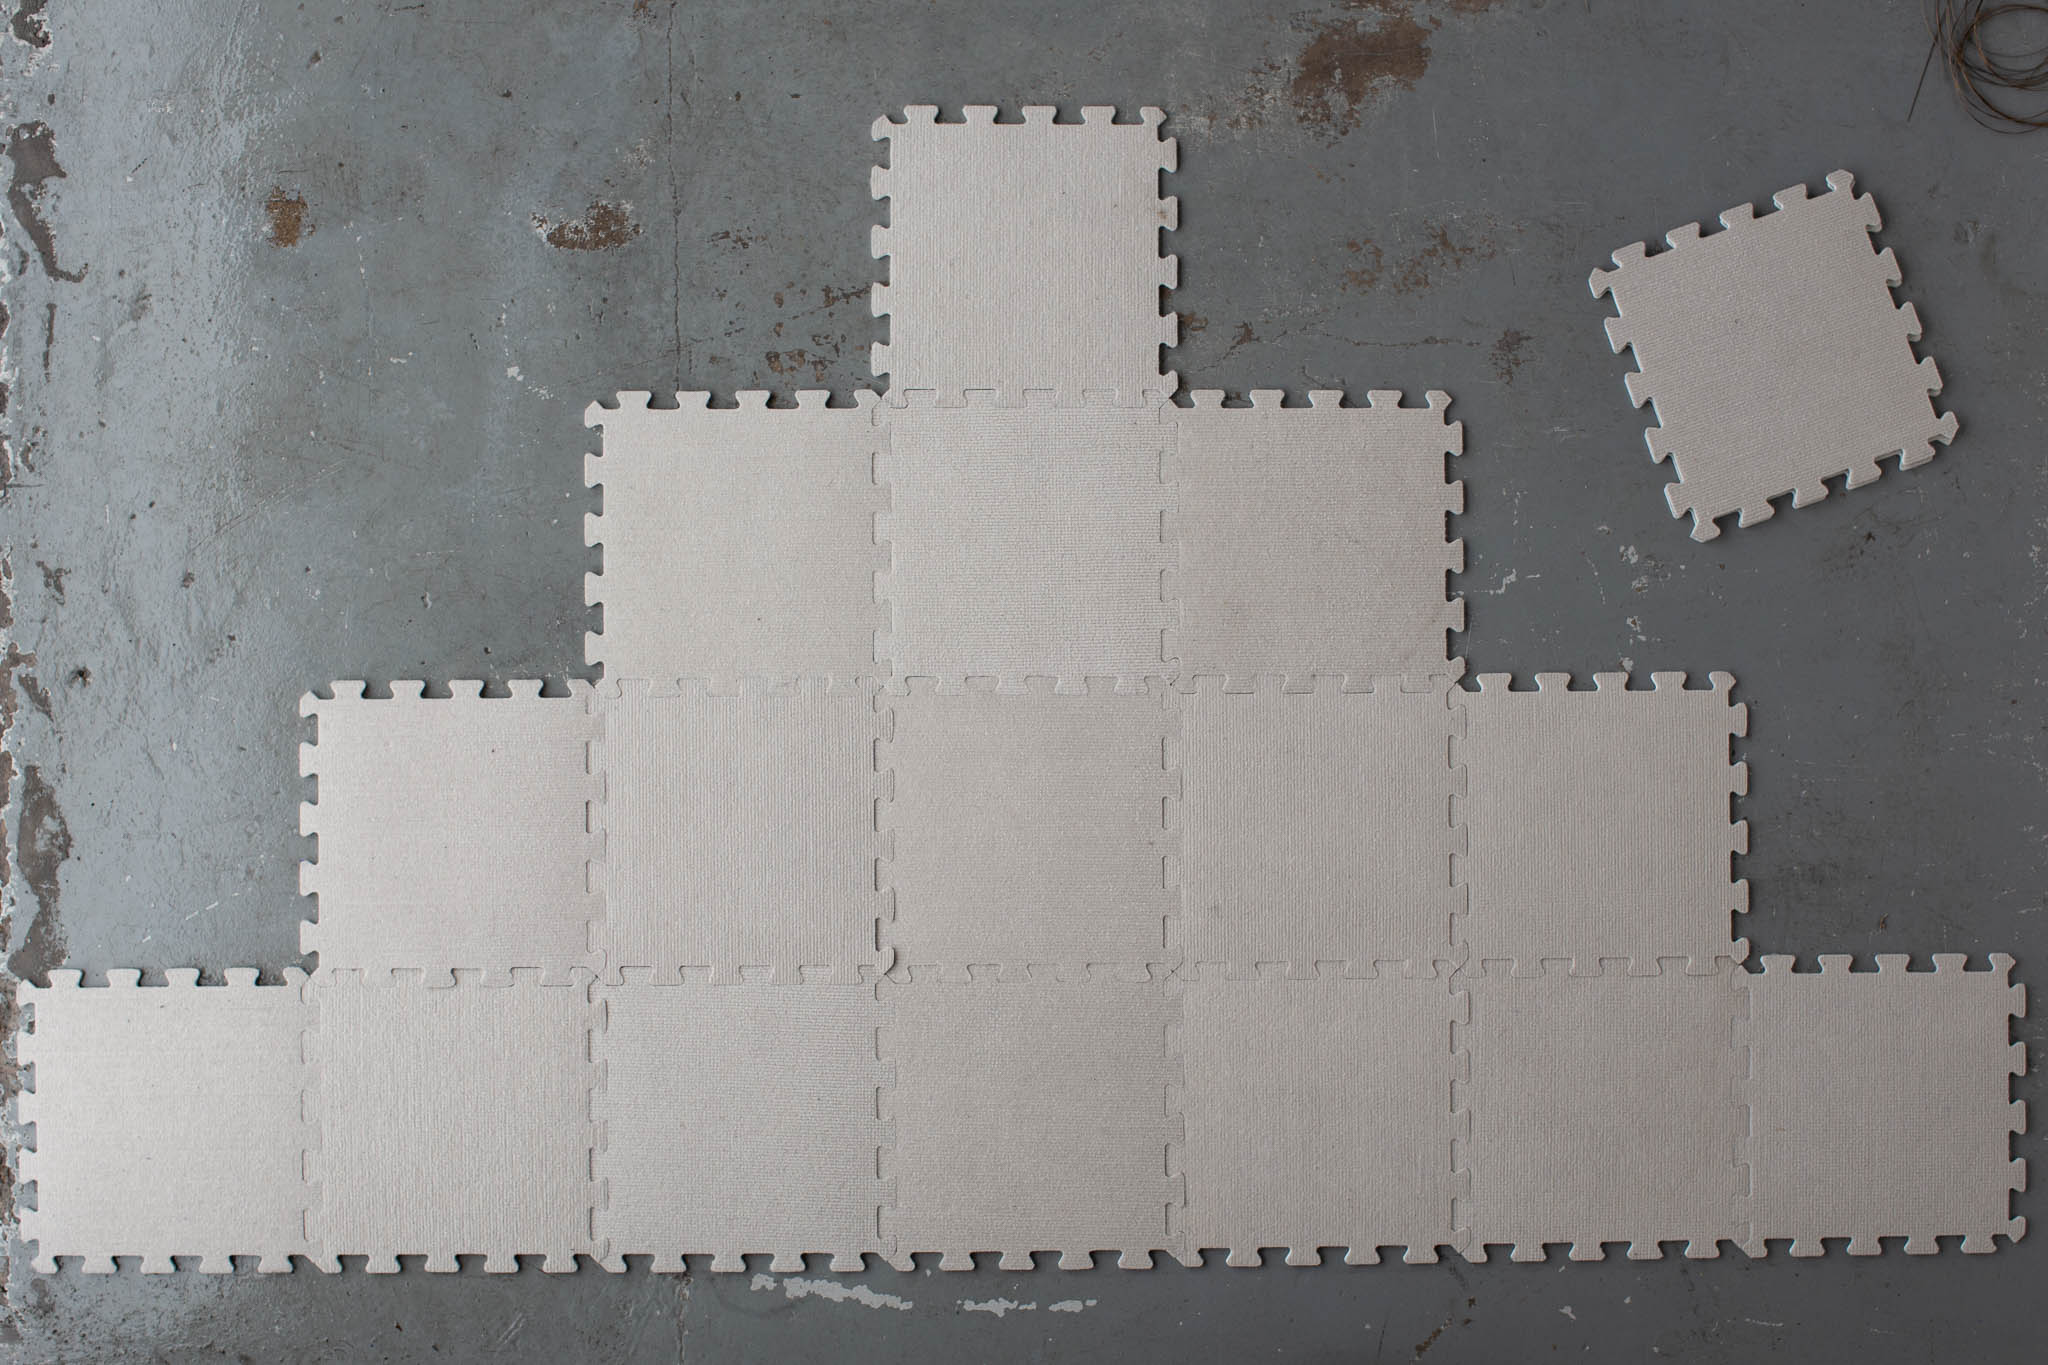 White blocking mats are arranged on a flat grey surface in a pyramid shape, with 7 on the lower level, 5 above that, then 3, then 1. A spare blocking mat lies to the right side.